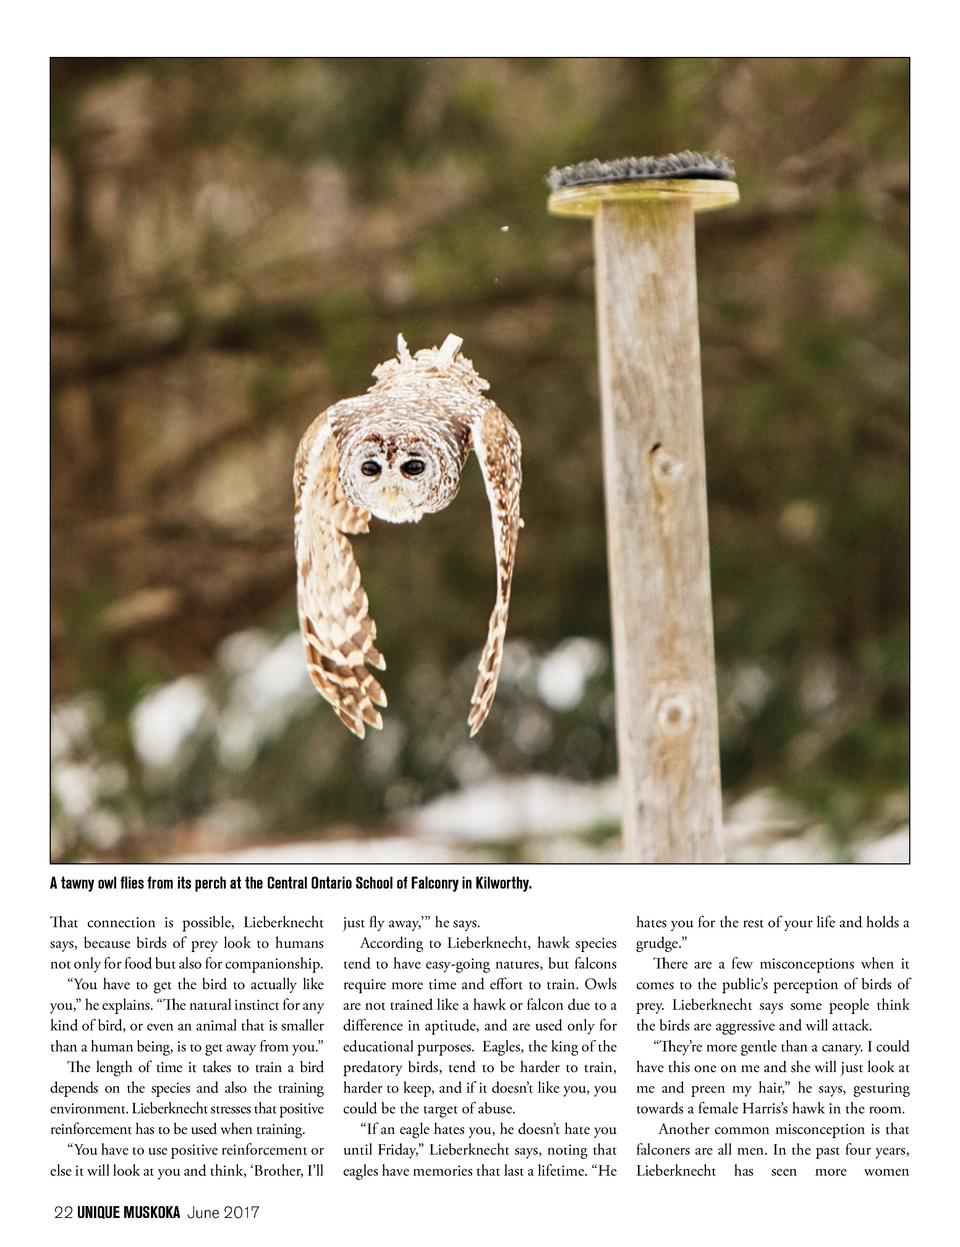 A tawny owl flies from its perch at the Central Ontario School of Falconry in Kilworthy. That connection is possible, Lieb...